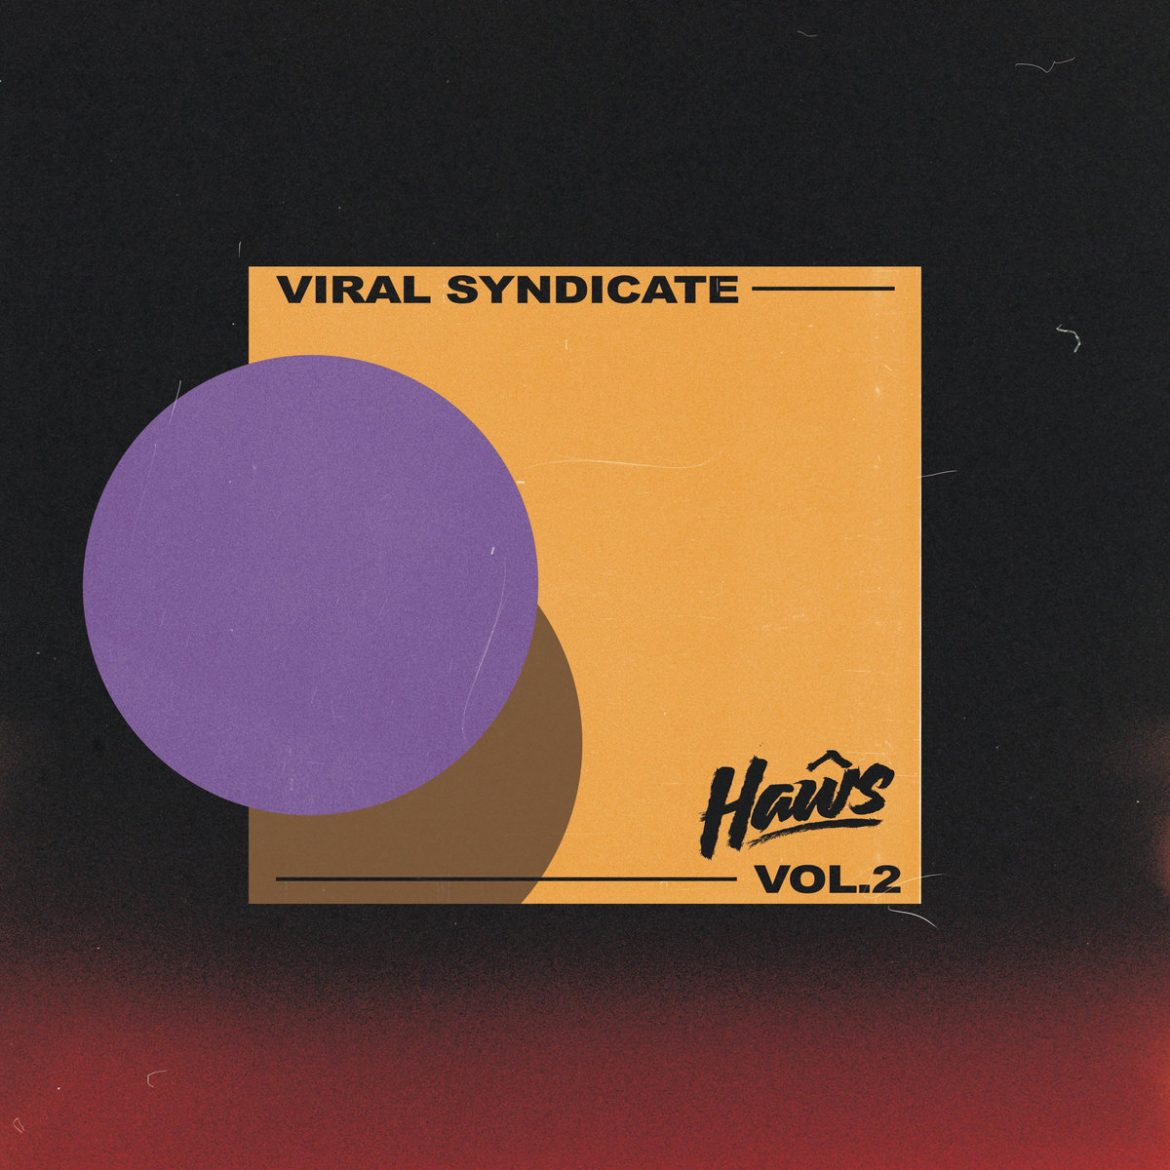 Viral Syndicate Vol. 2 | Deep Disco essentials